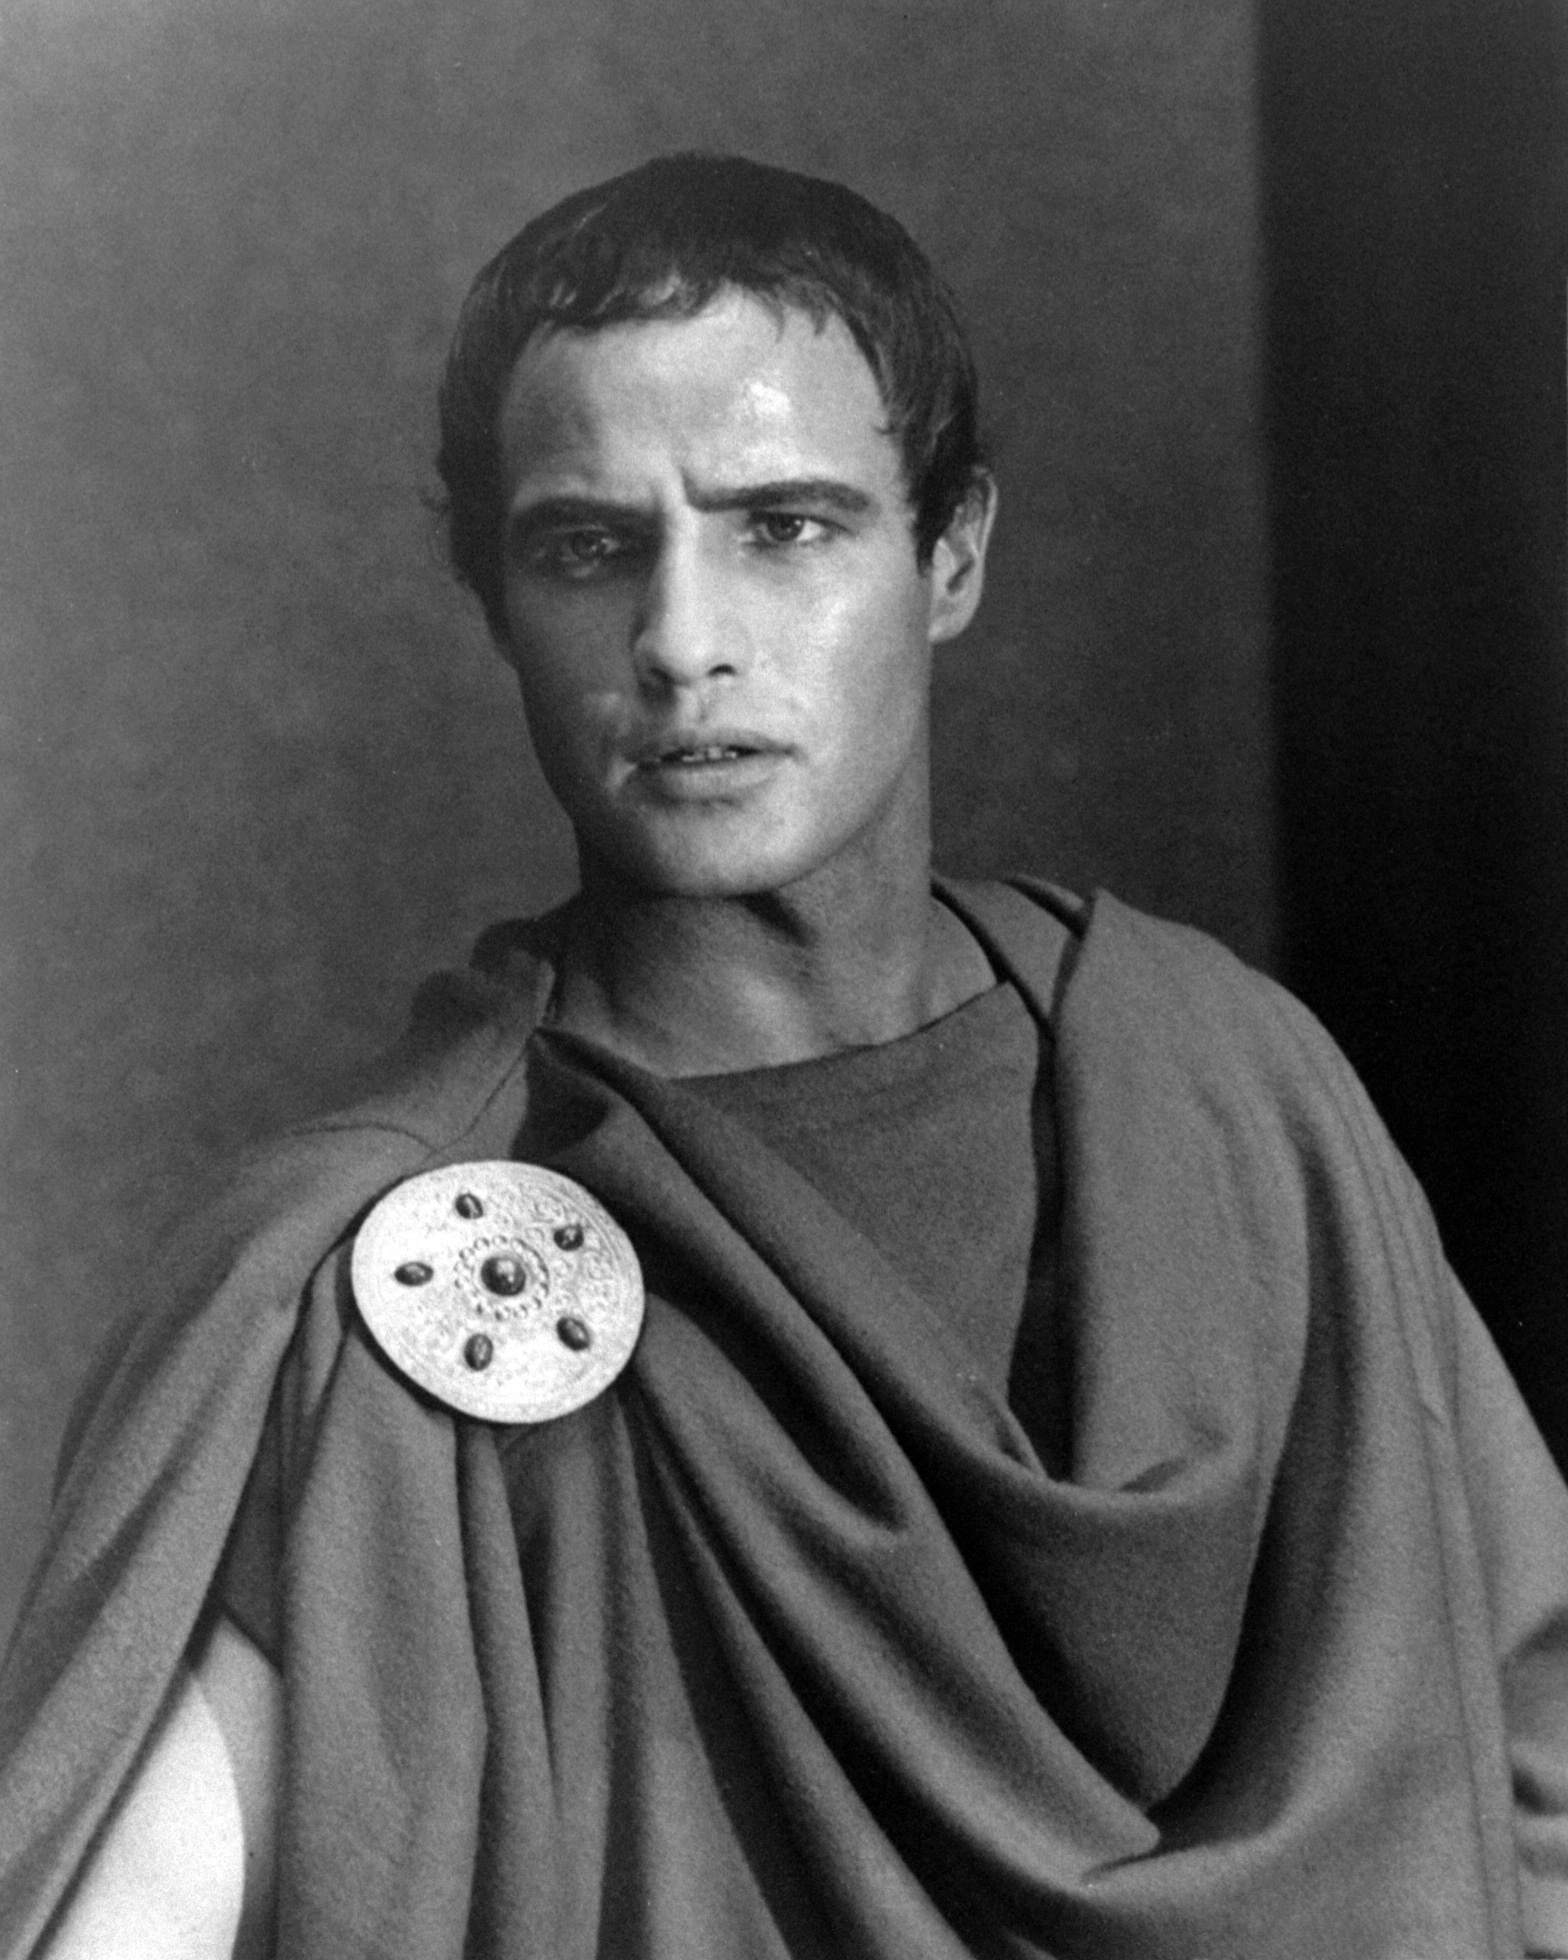 an analysis of mark antony in the play the tragedy of julius caesar Shakespeare's play, julius caesar brainstorm from the title: shakespeare's play this exercise is designed to be used before seeing the play learning learning objective:  mark antony strikes a truce with the conspirators, asking to accompany caesar's body and speak at his funeral brutus agrees, and at the funeral delivers a stirring.